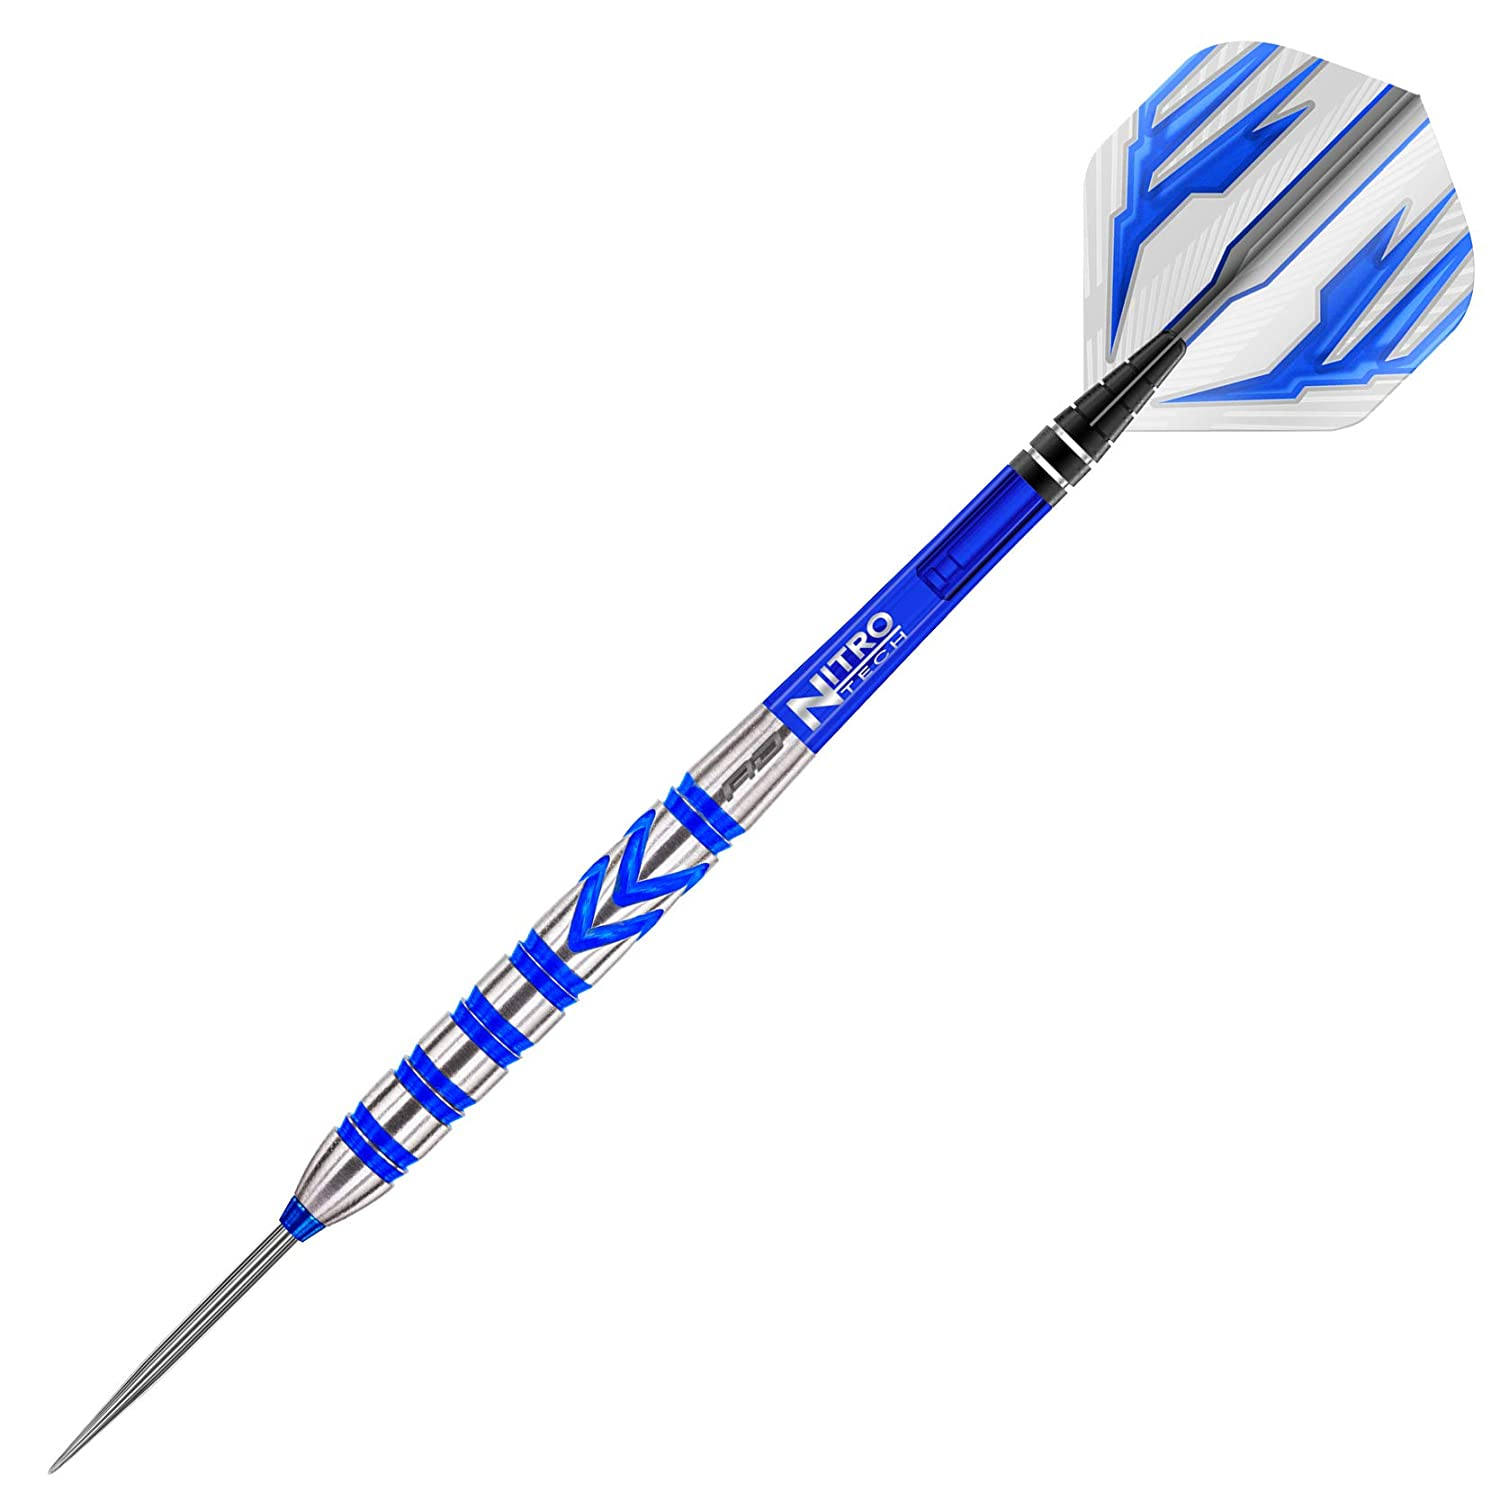 Red Dragon Gerwyn Price 24g Tungsten Darts Set with Flights and Stems